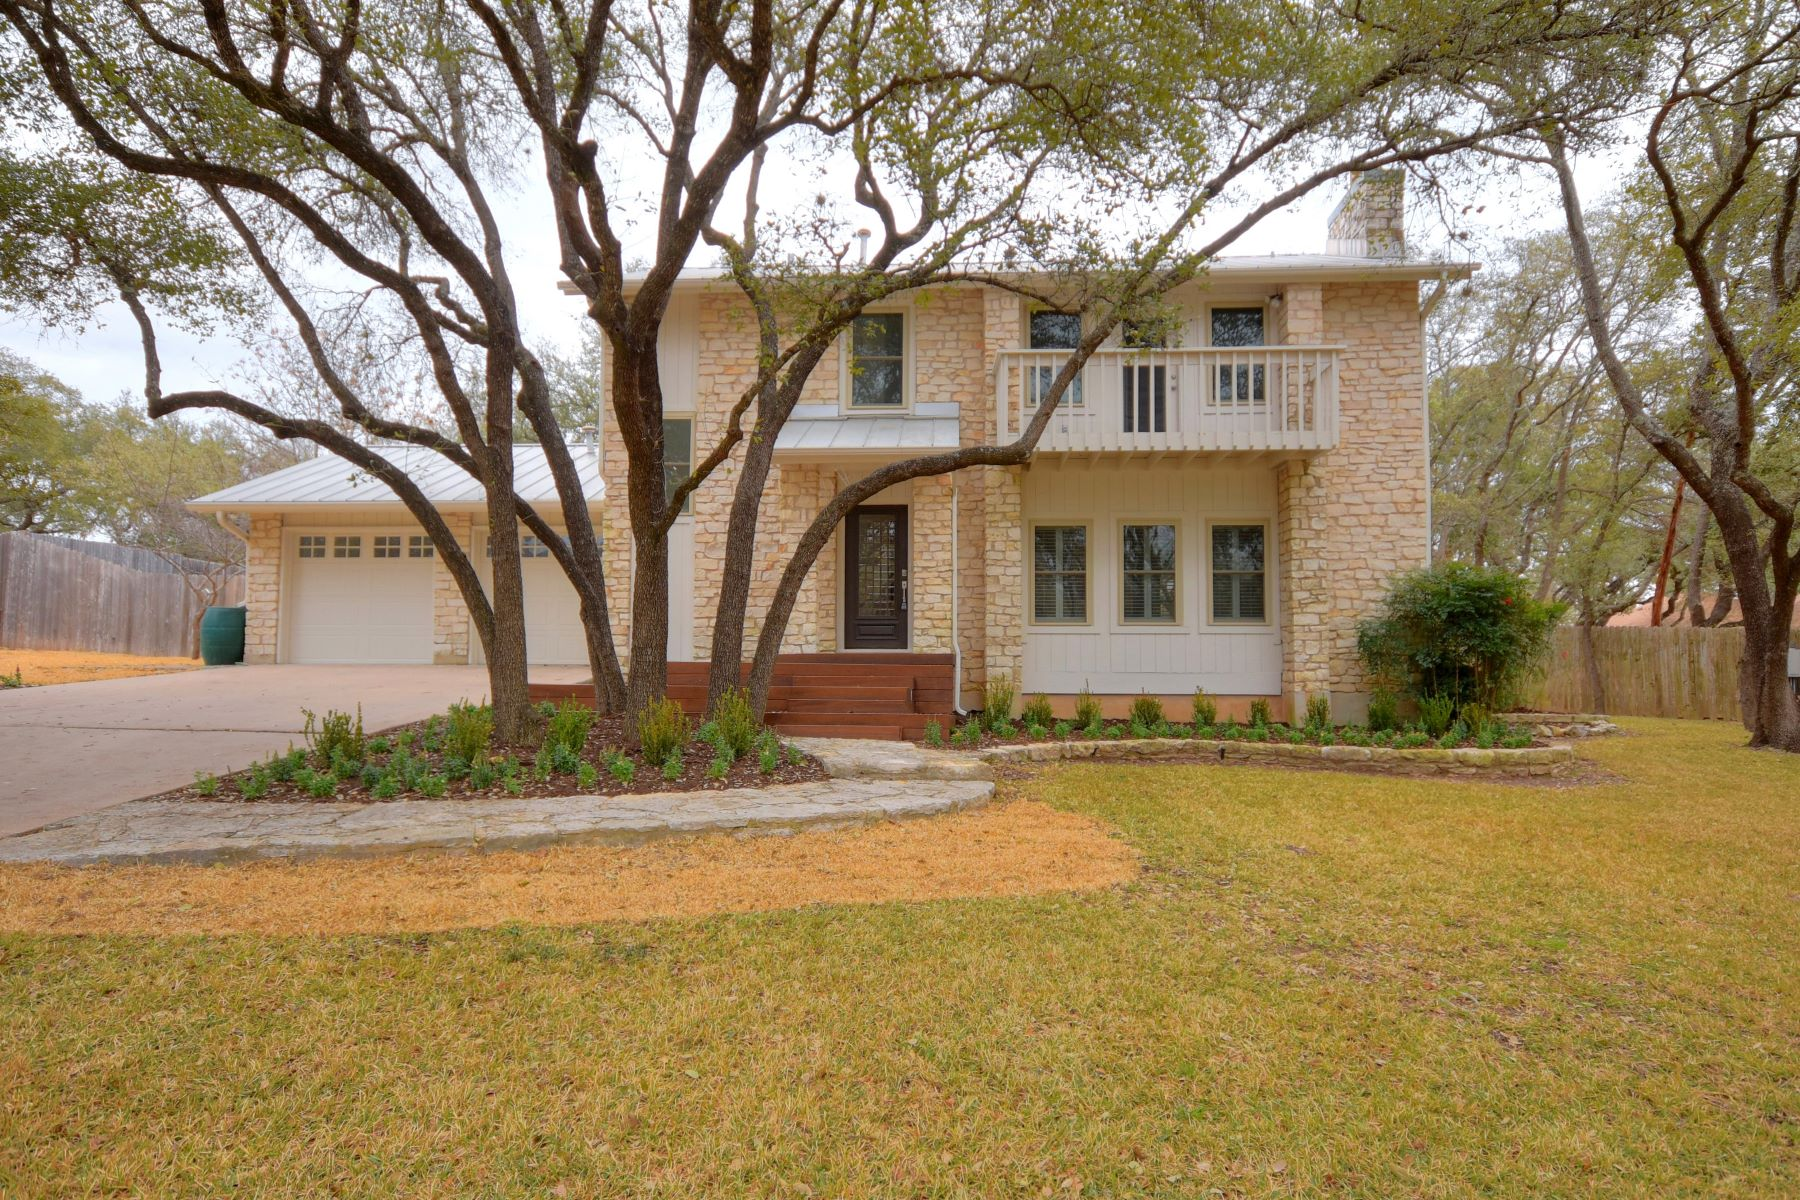 Additional photo for property listing at 1503 Falcon Ledge Drive 1503 Falcon Ledge Dr Austin, Texas 78746 Estados Unidos